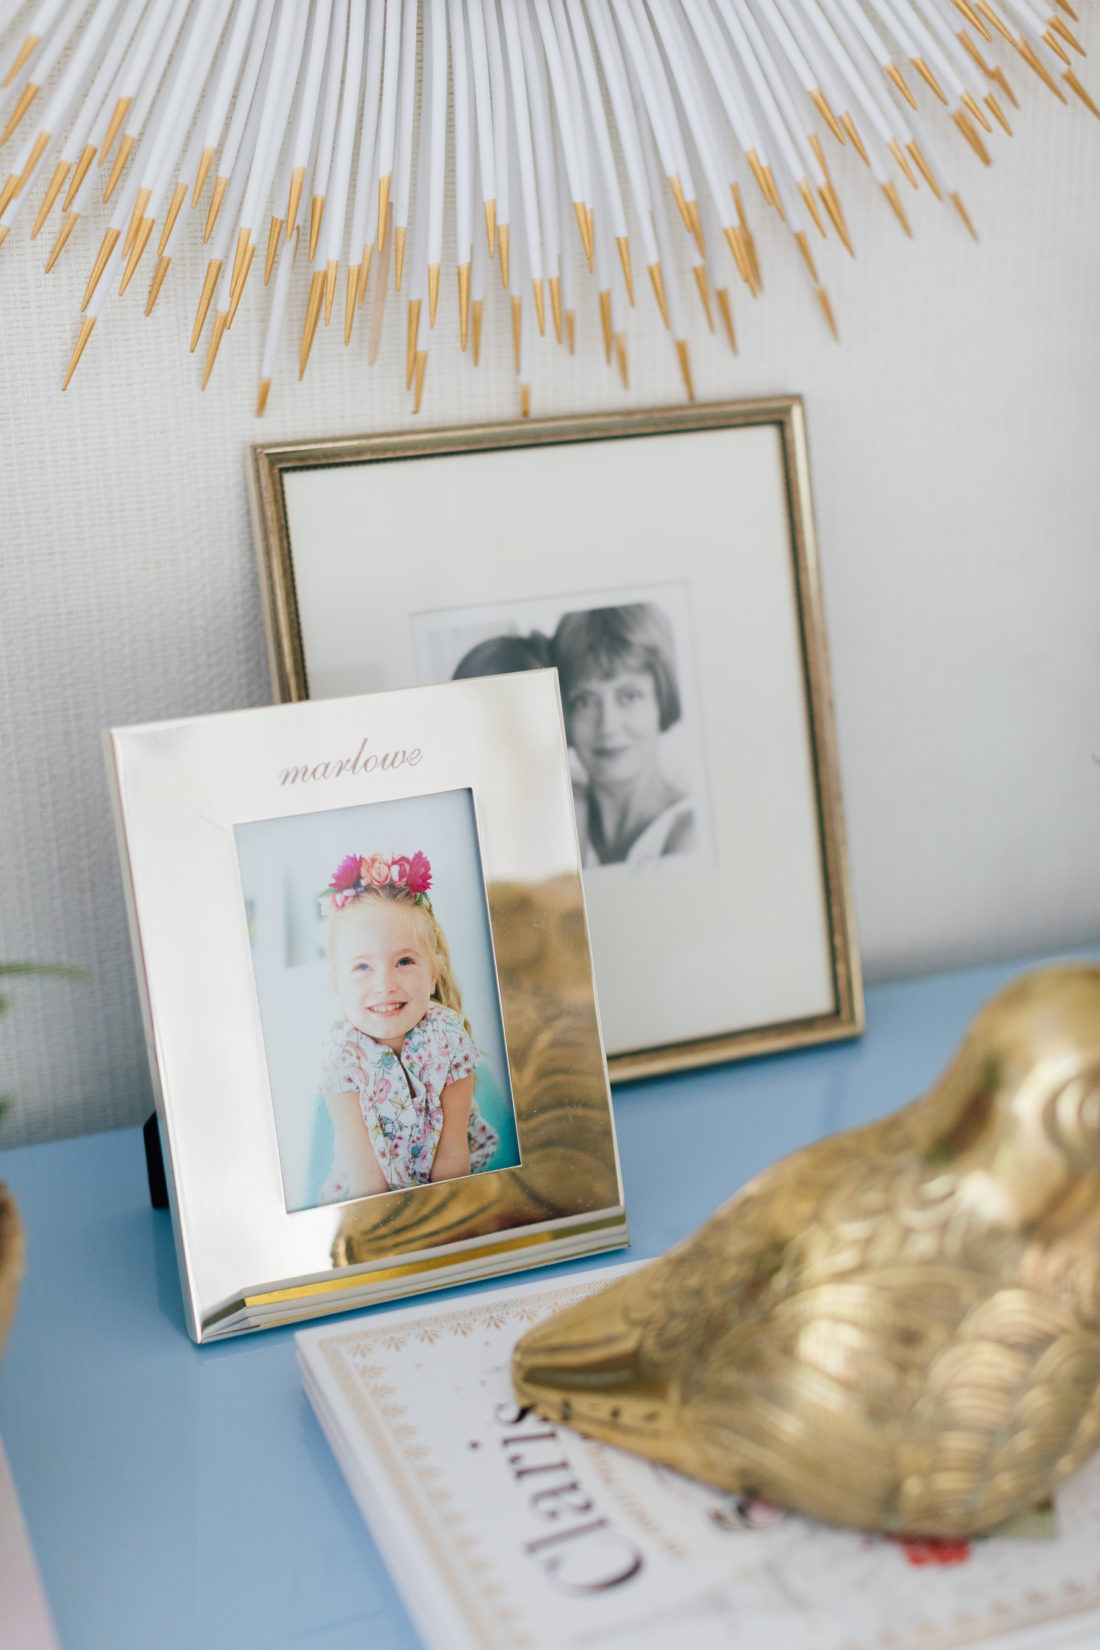 Marlowe Martino's colorful new bedroom reveal